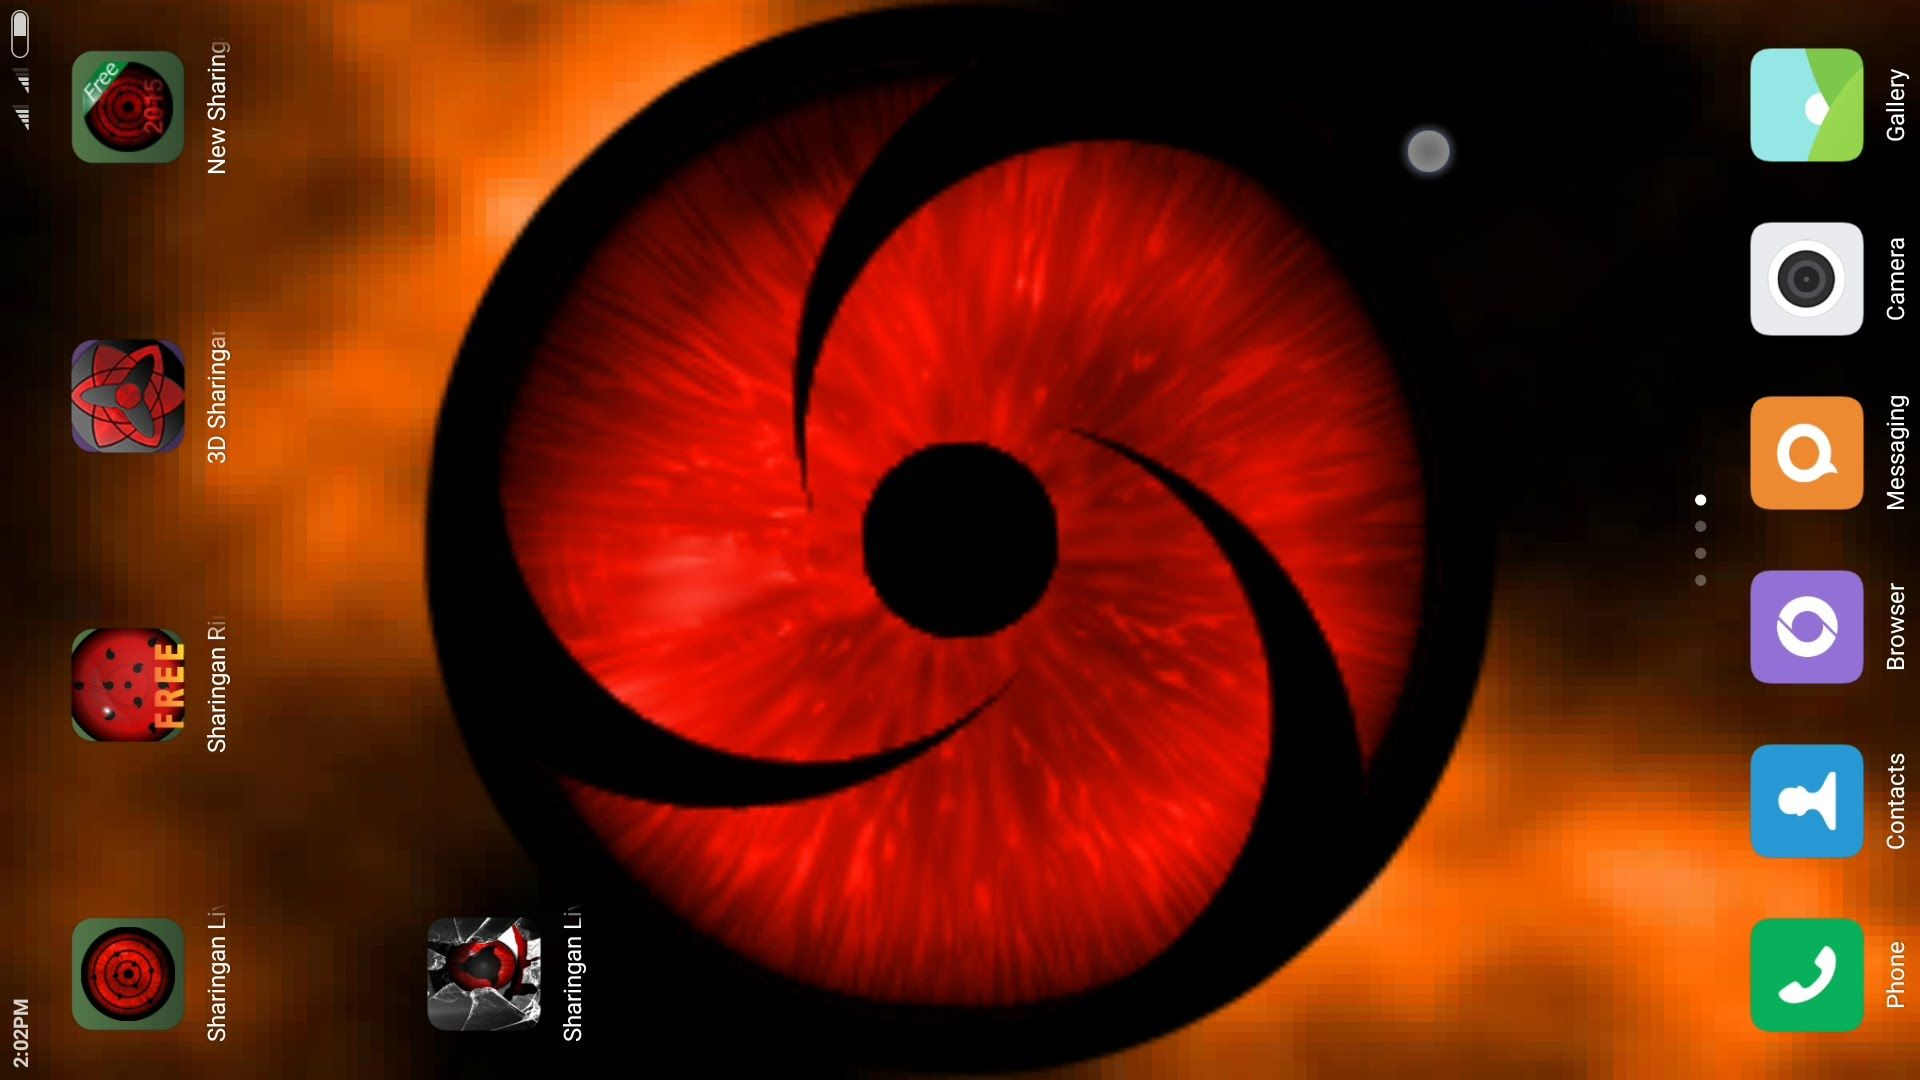 Top 5 Awesome Sharingan Live Wallpaper Apps Ever For Android